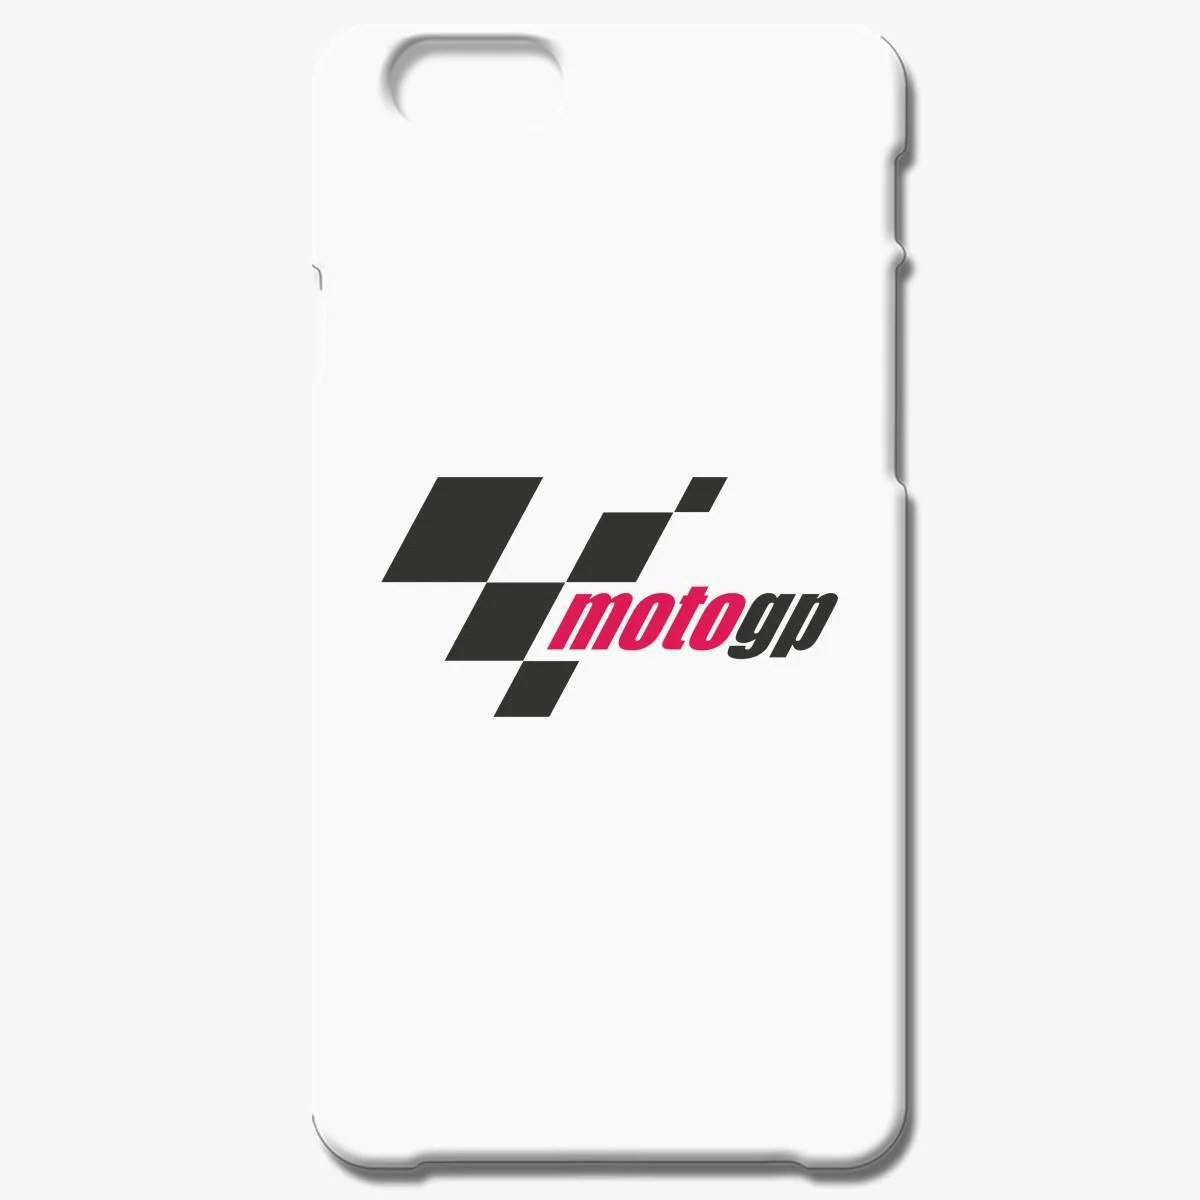 Moto Gp Logo Iphone 6 6s Plus Case